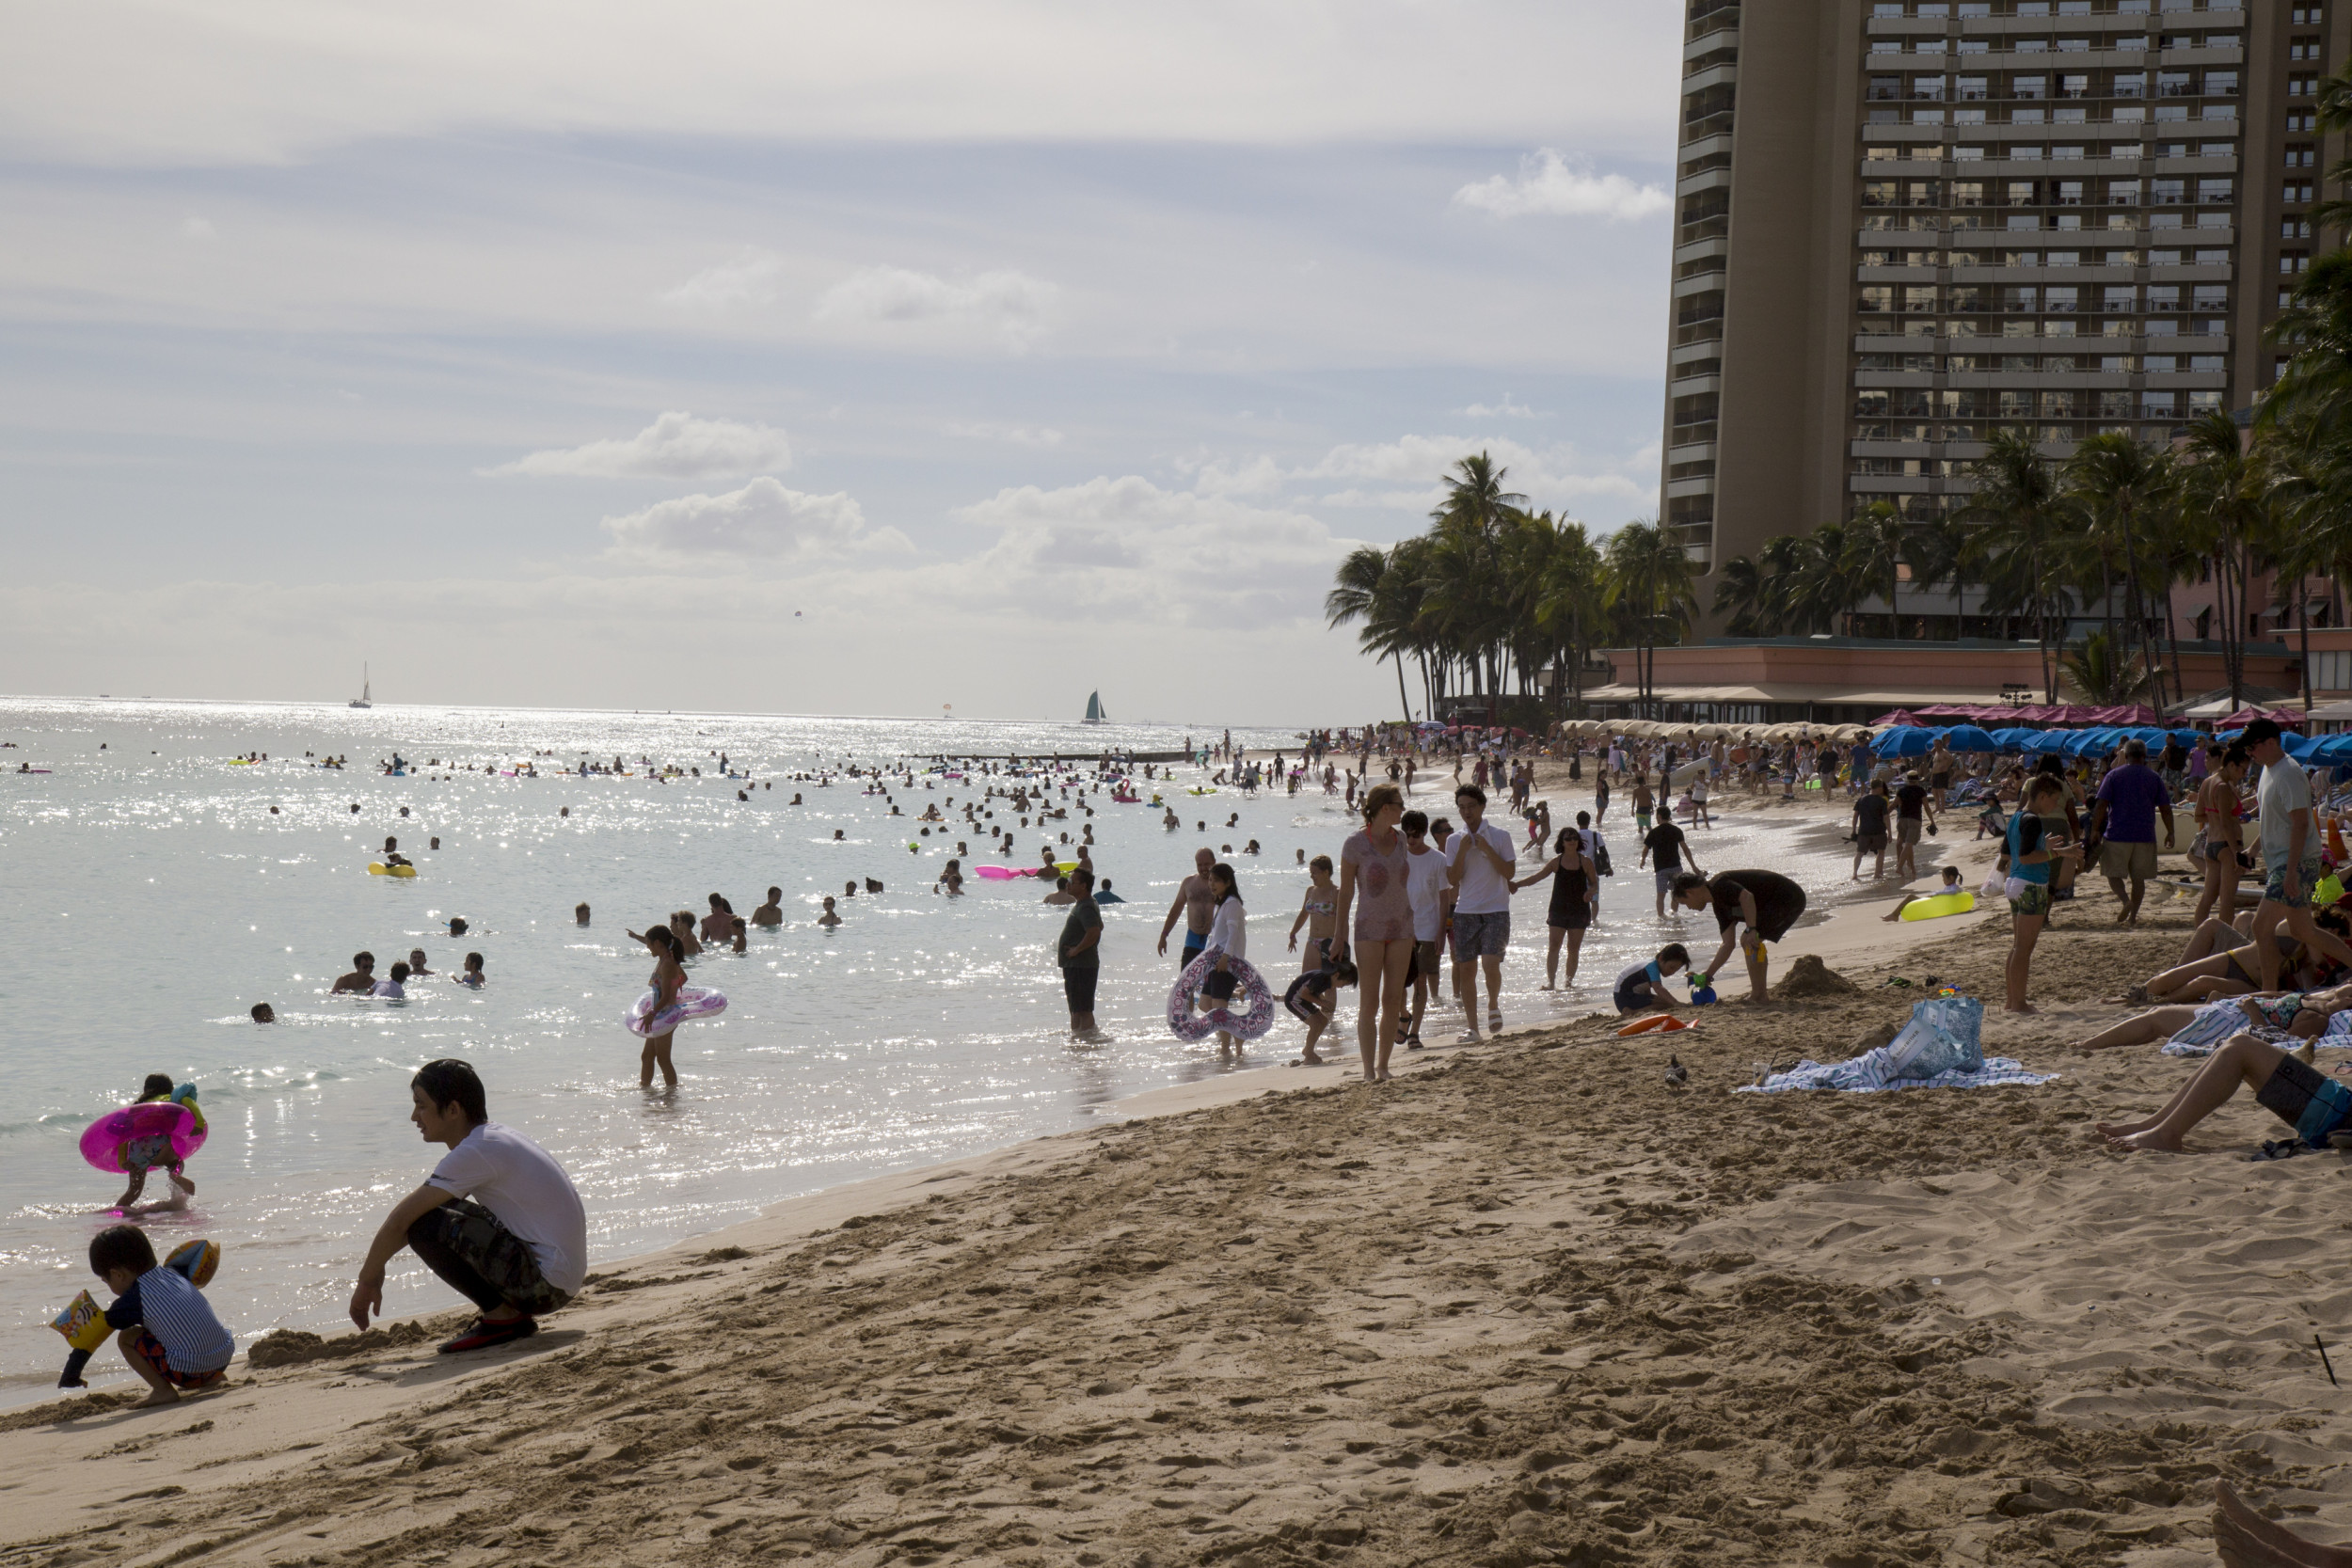 Hawaii coronavirus cases rise 36 percent in a week amid plans to reopen tourism